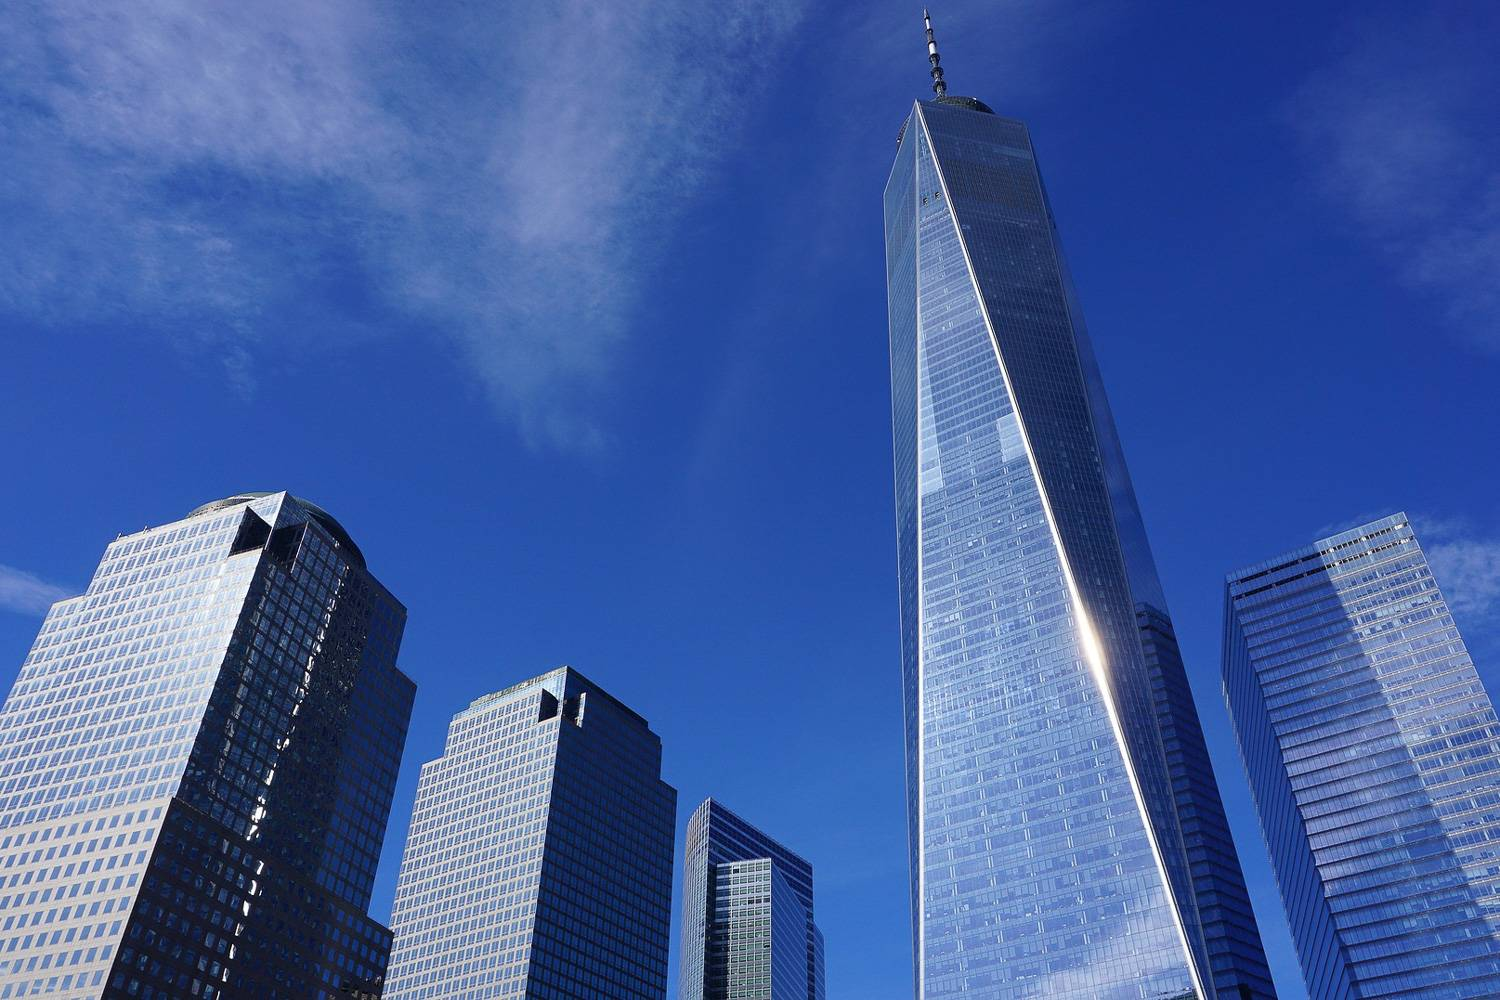 Image of the One World Trade Center building as seen from the ground.